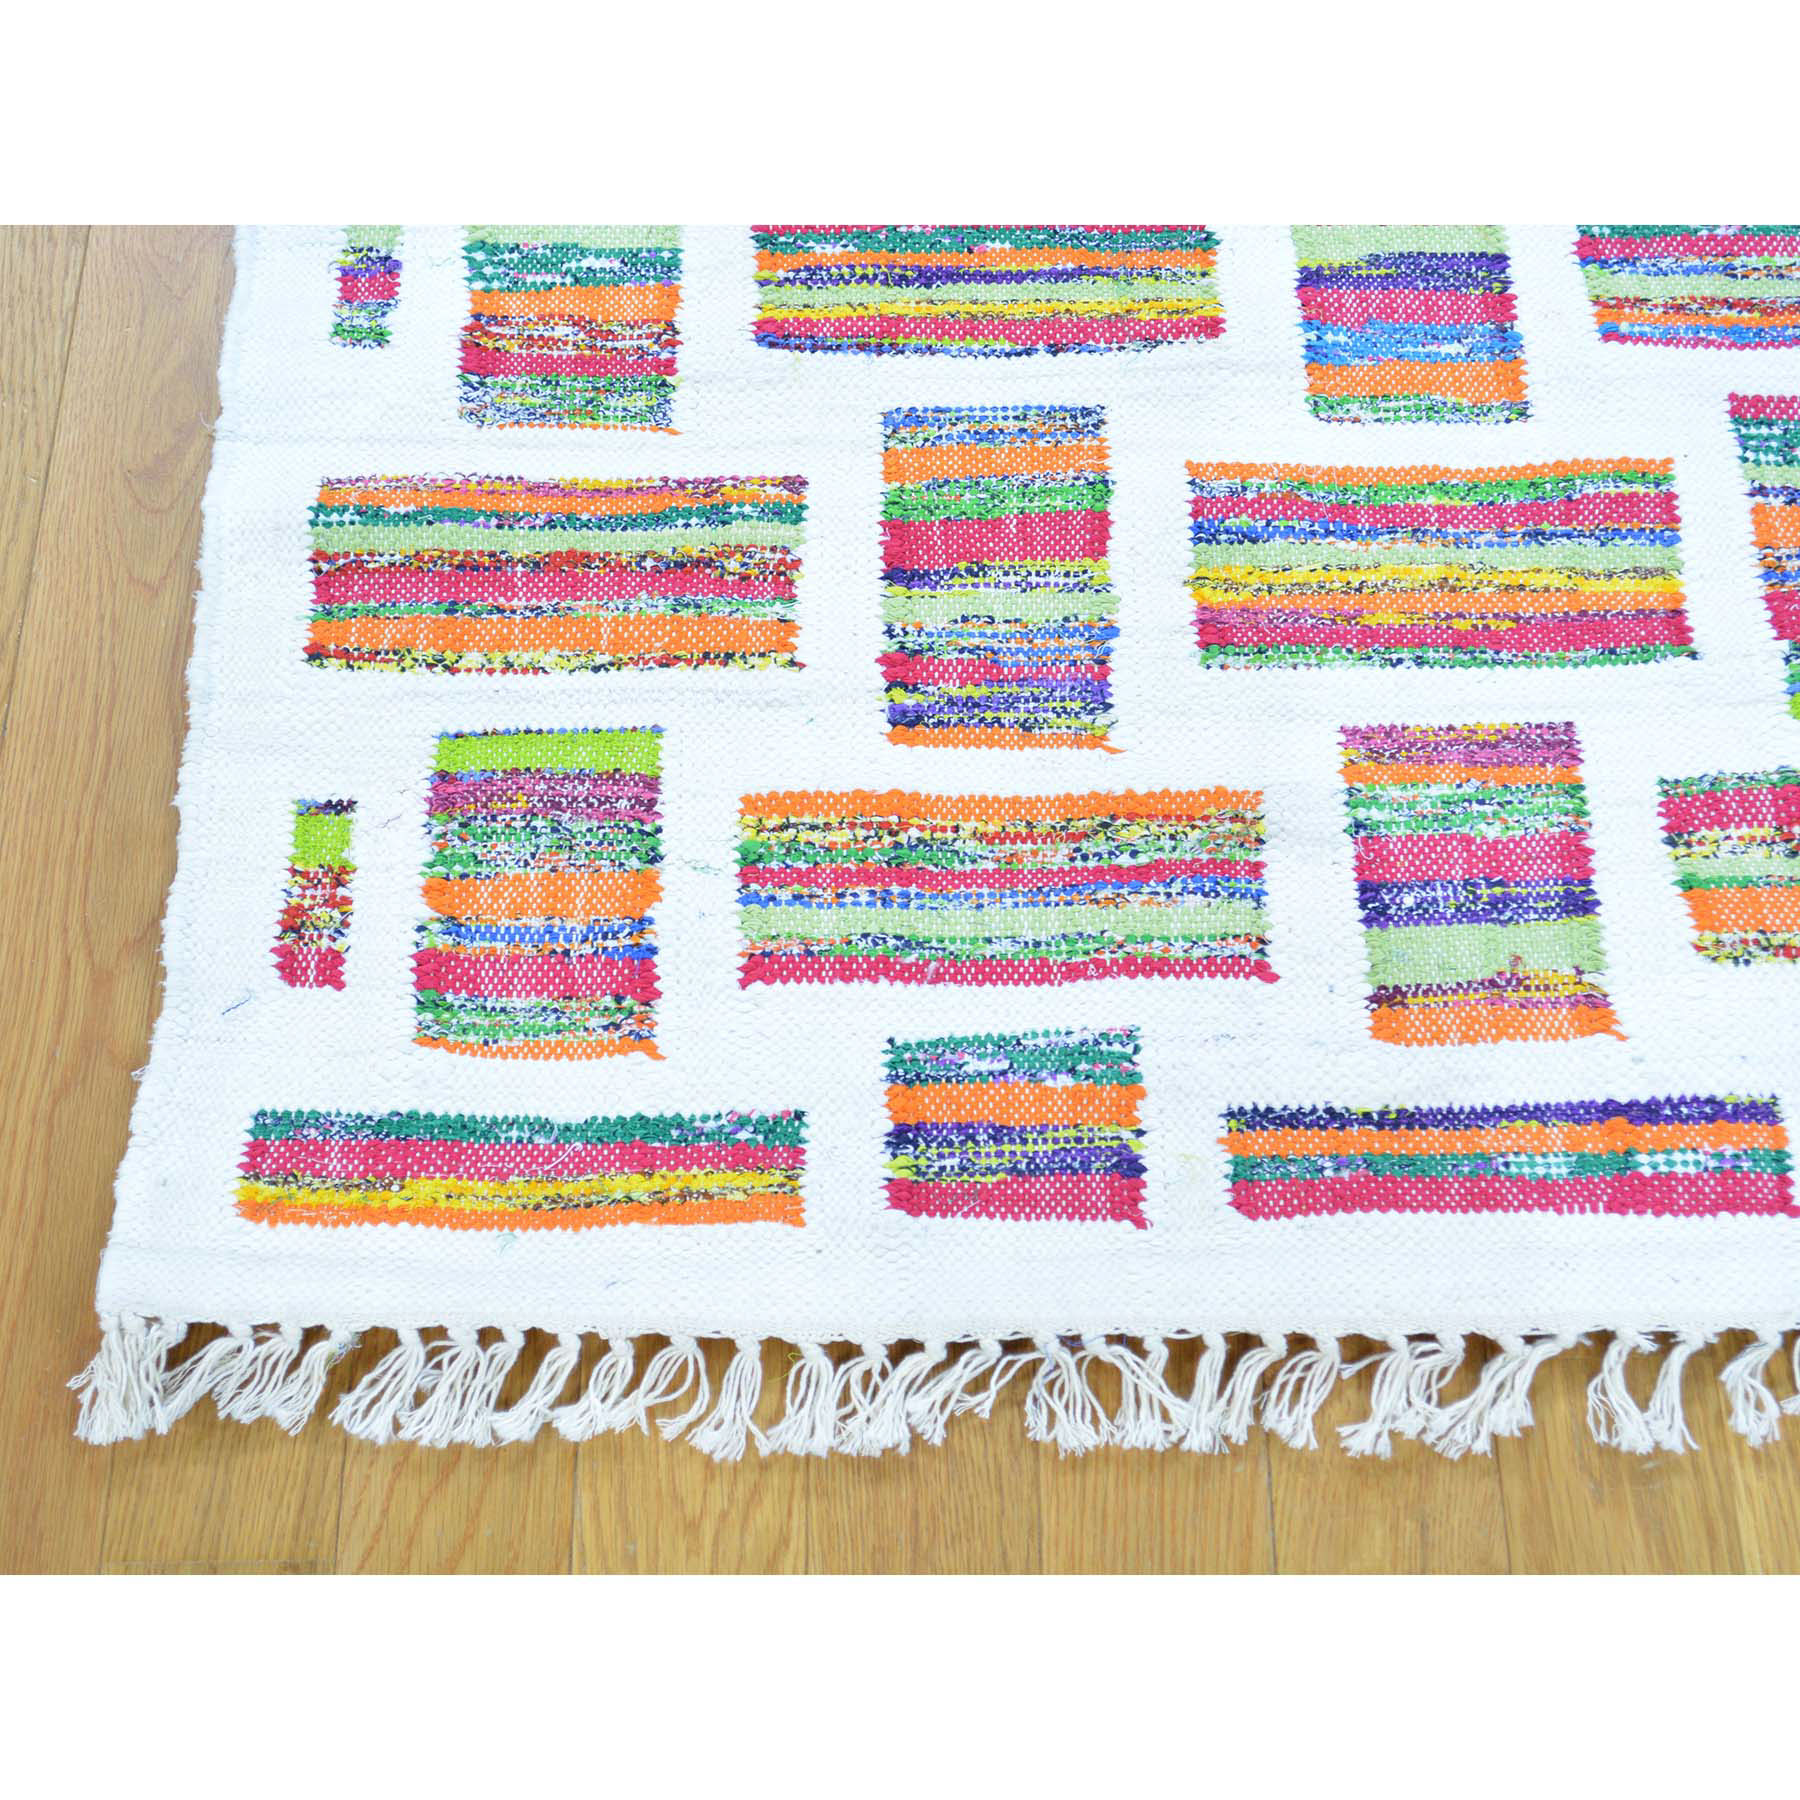 3-4 x6- Pure Cotton Recycled Clothes Kilim Hand-Woven Oriental Rug